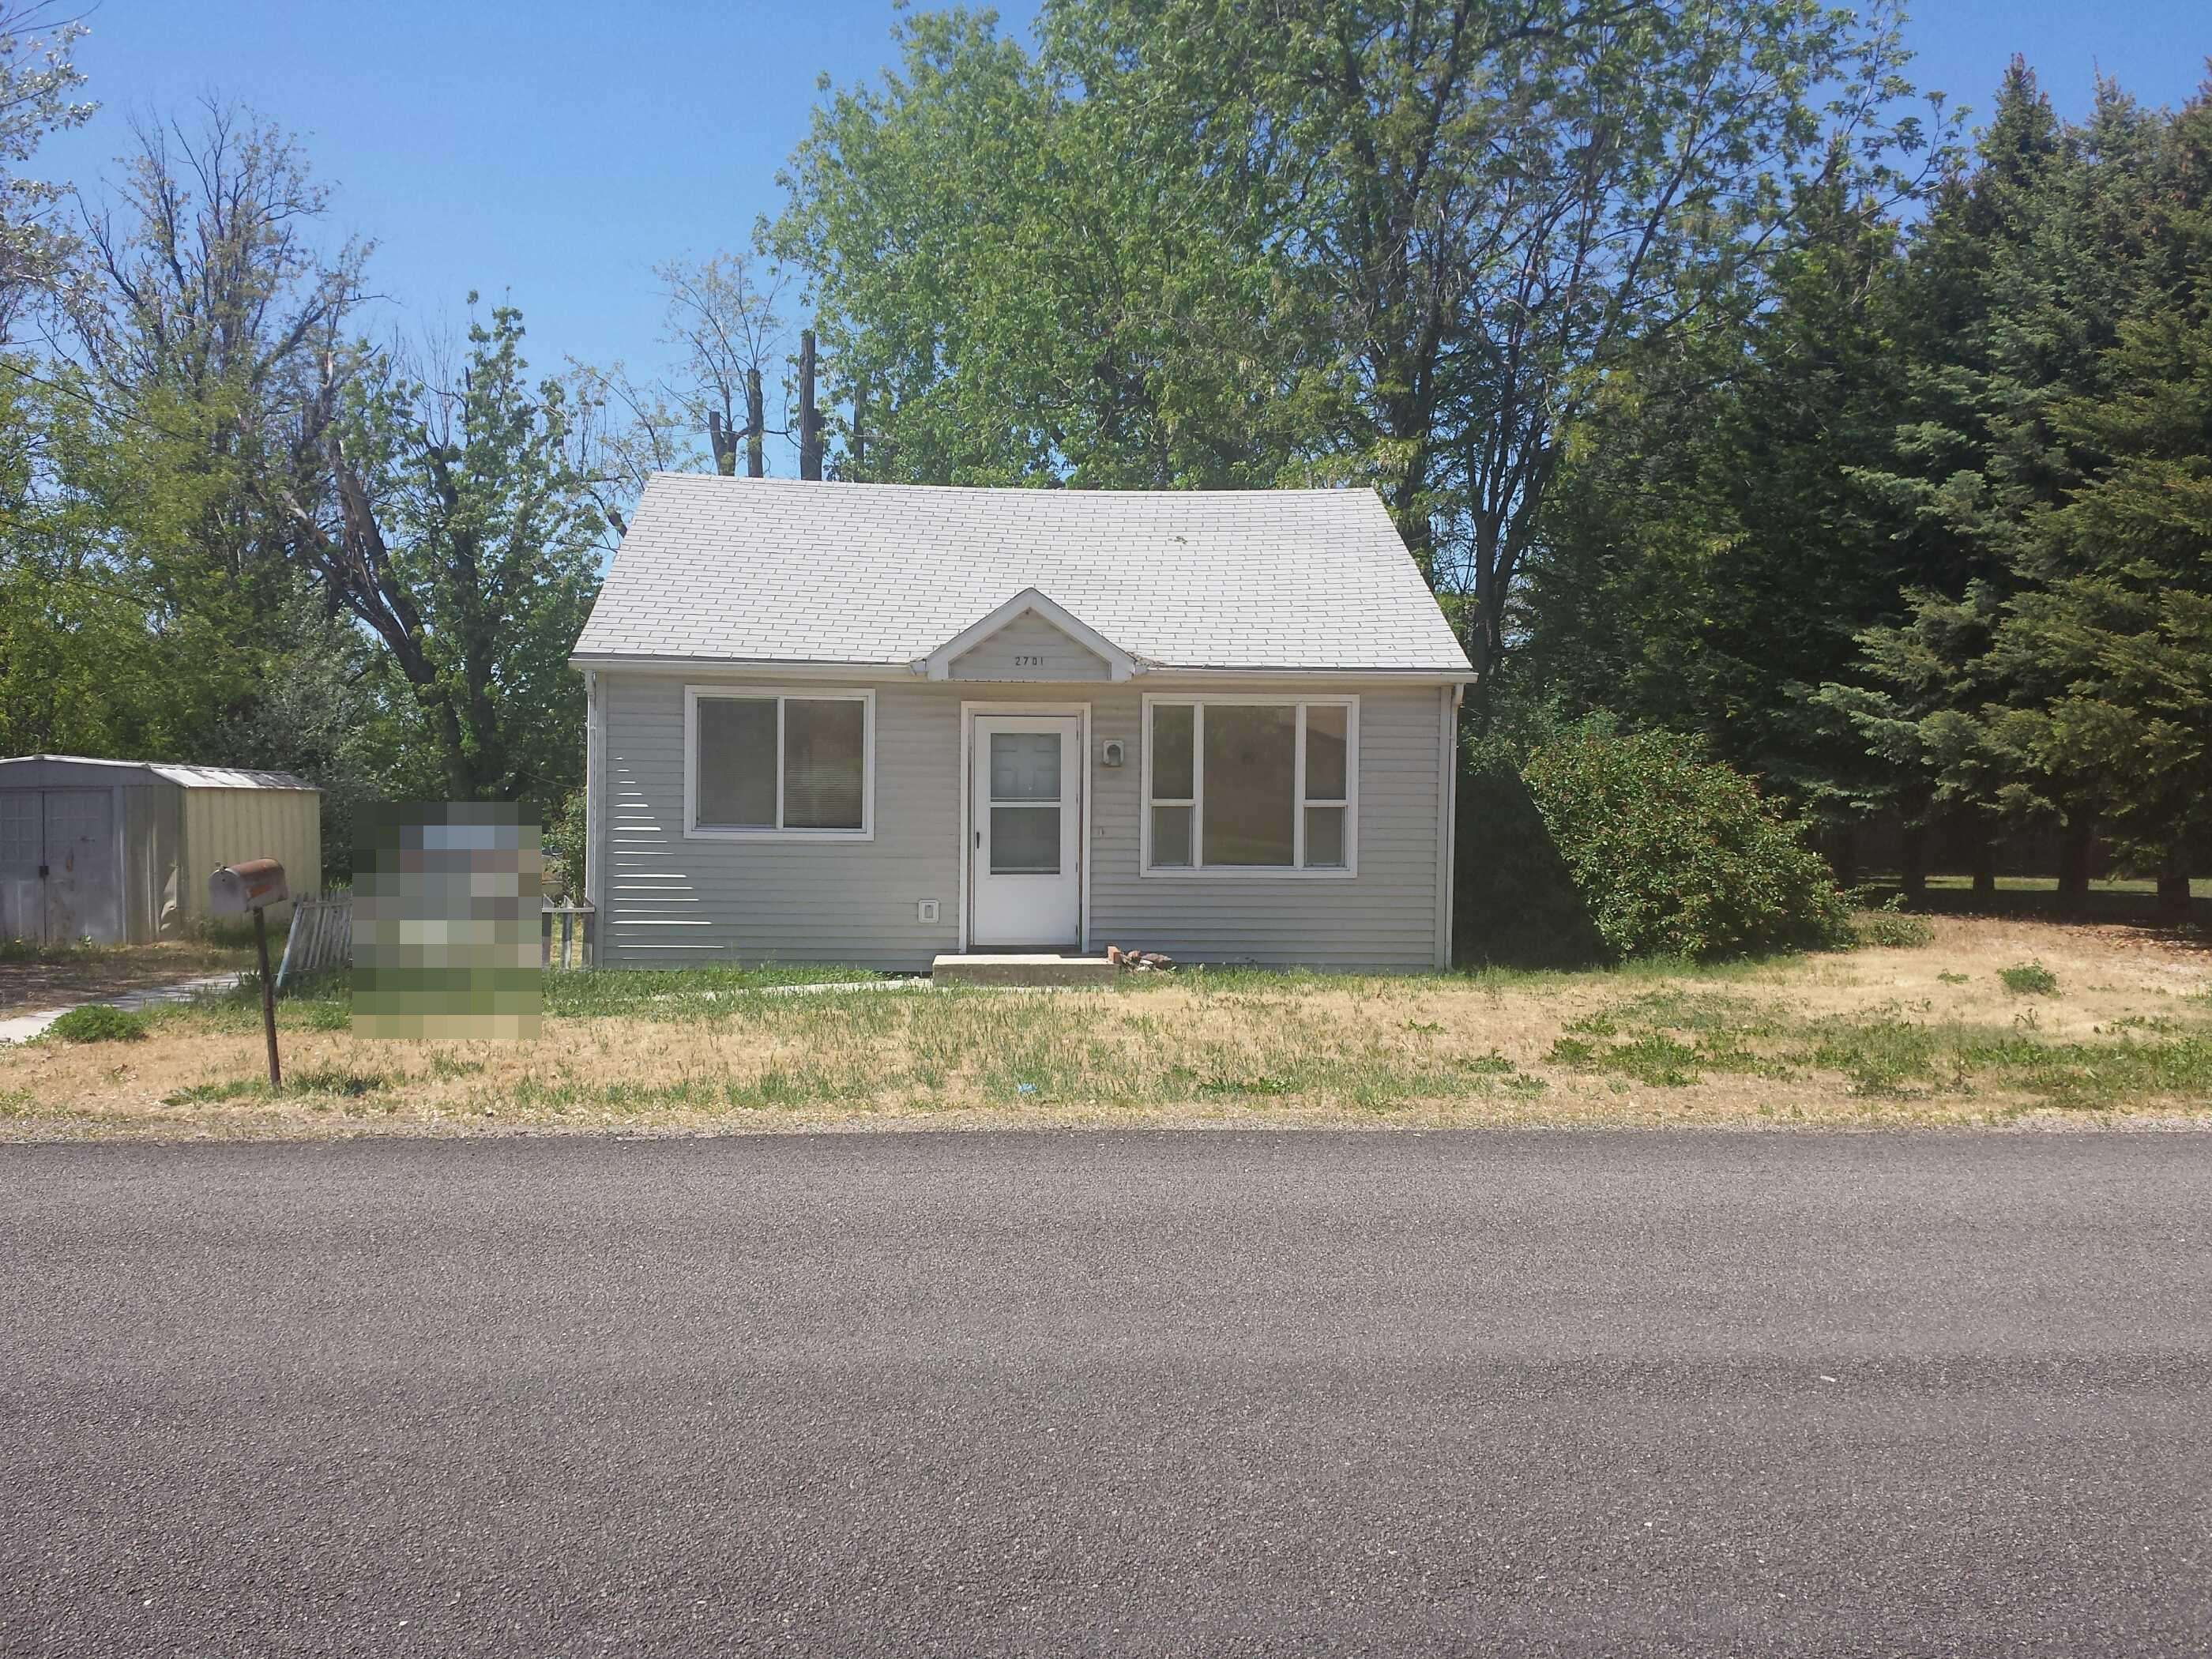 2701 S Pond St, Boise, ID 83705